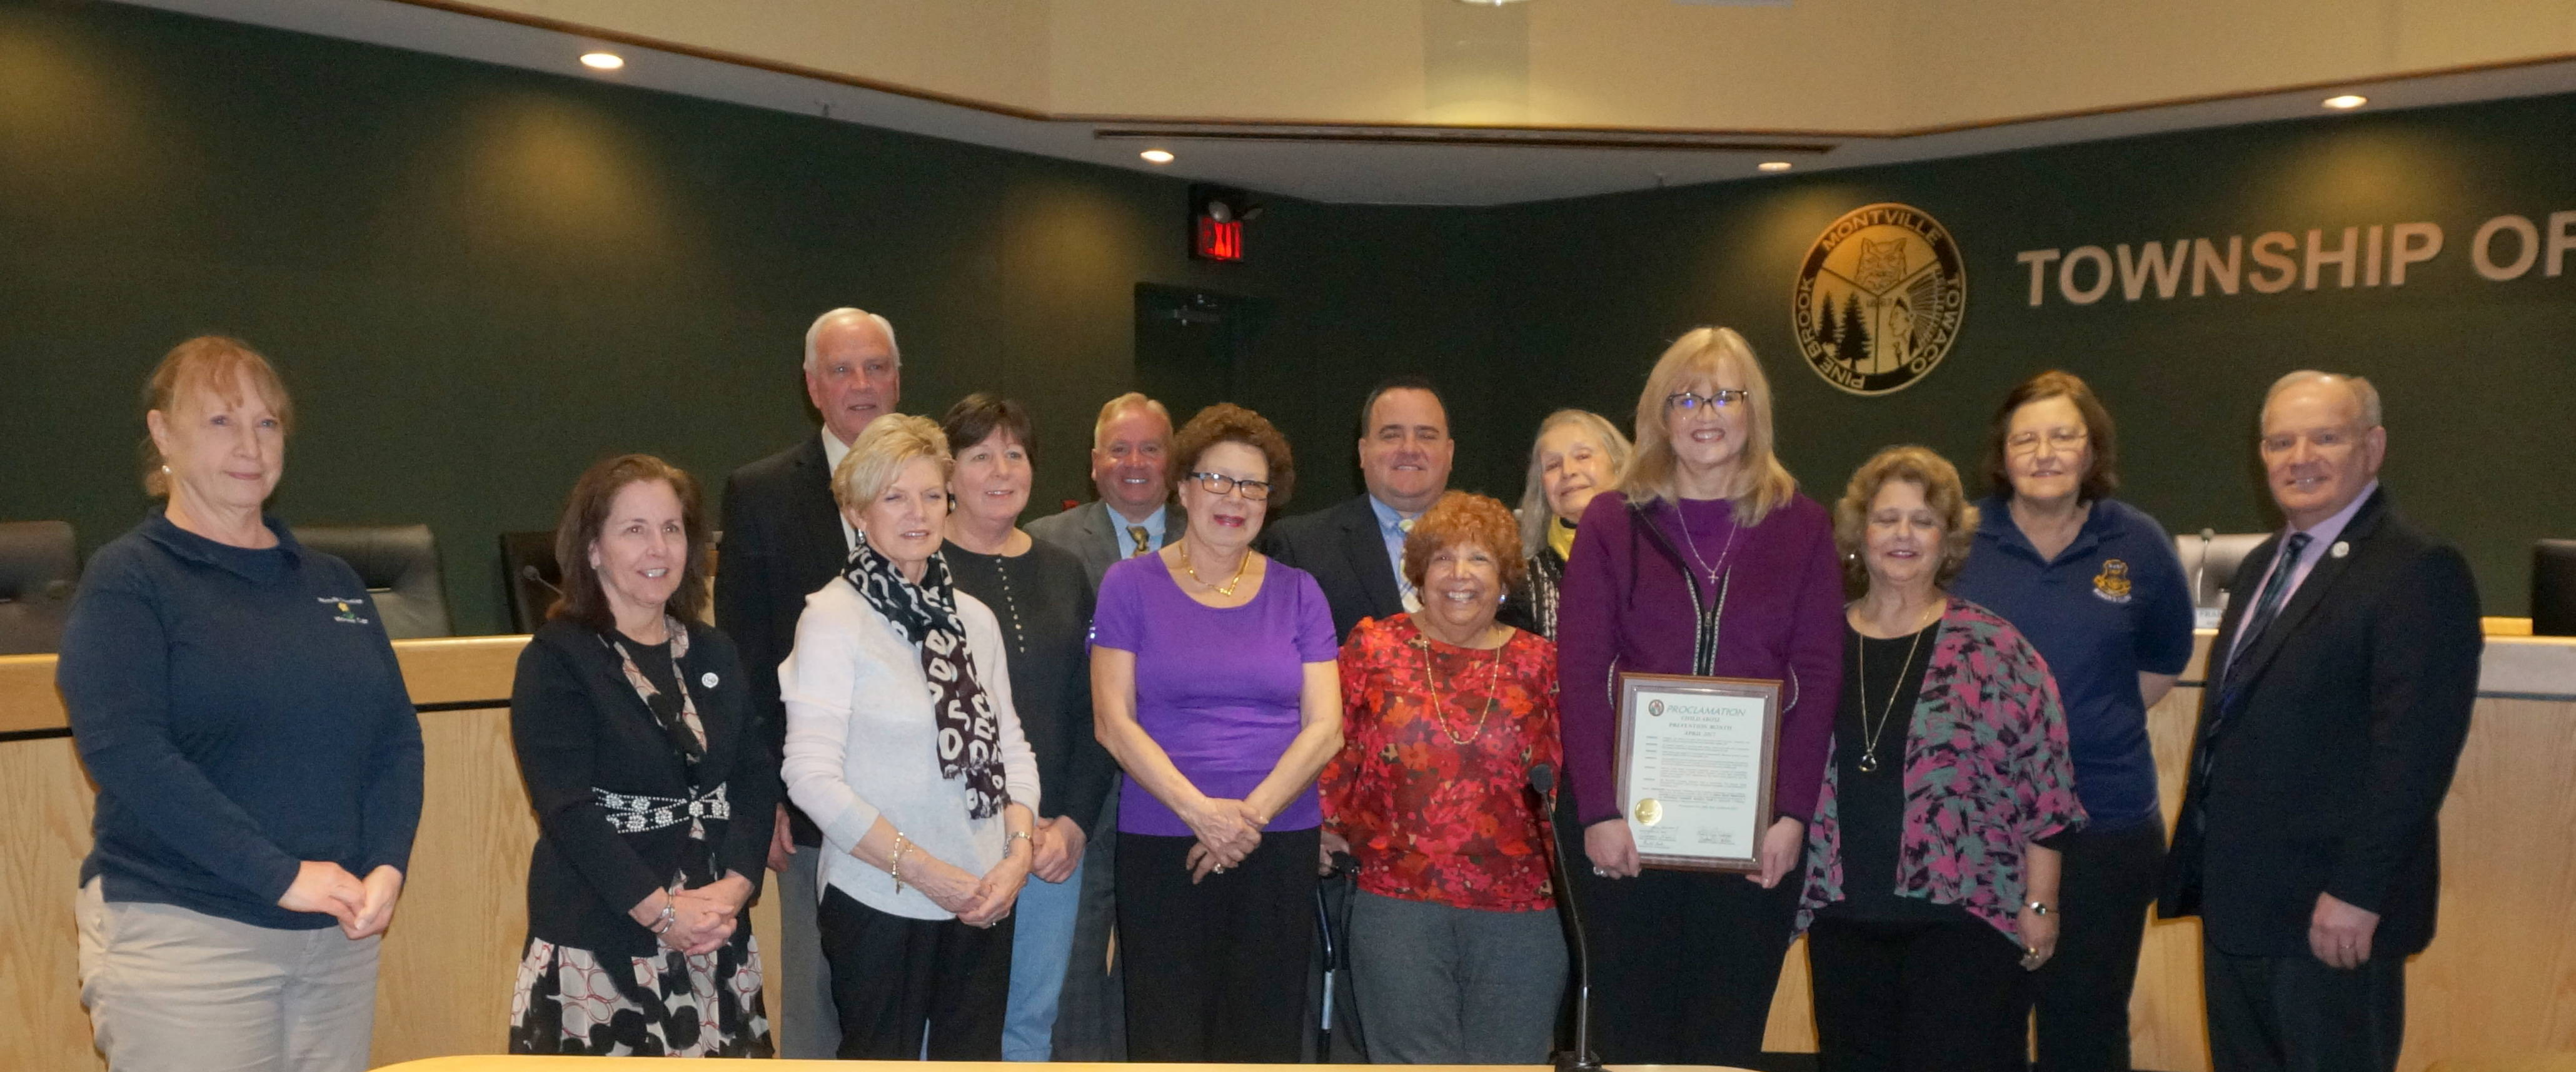 4b84d2bb8c8892f1740a_a_Women_s_Club_Members_pose_with_the_Township_Committee_and_the.JPG